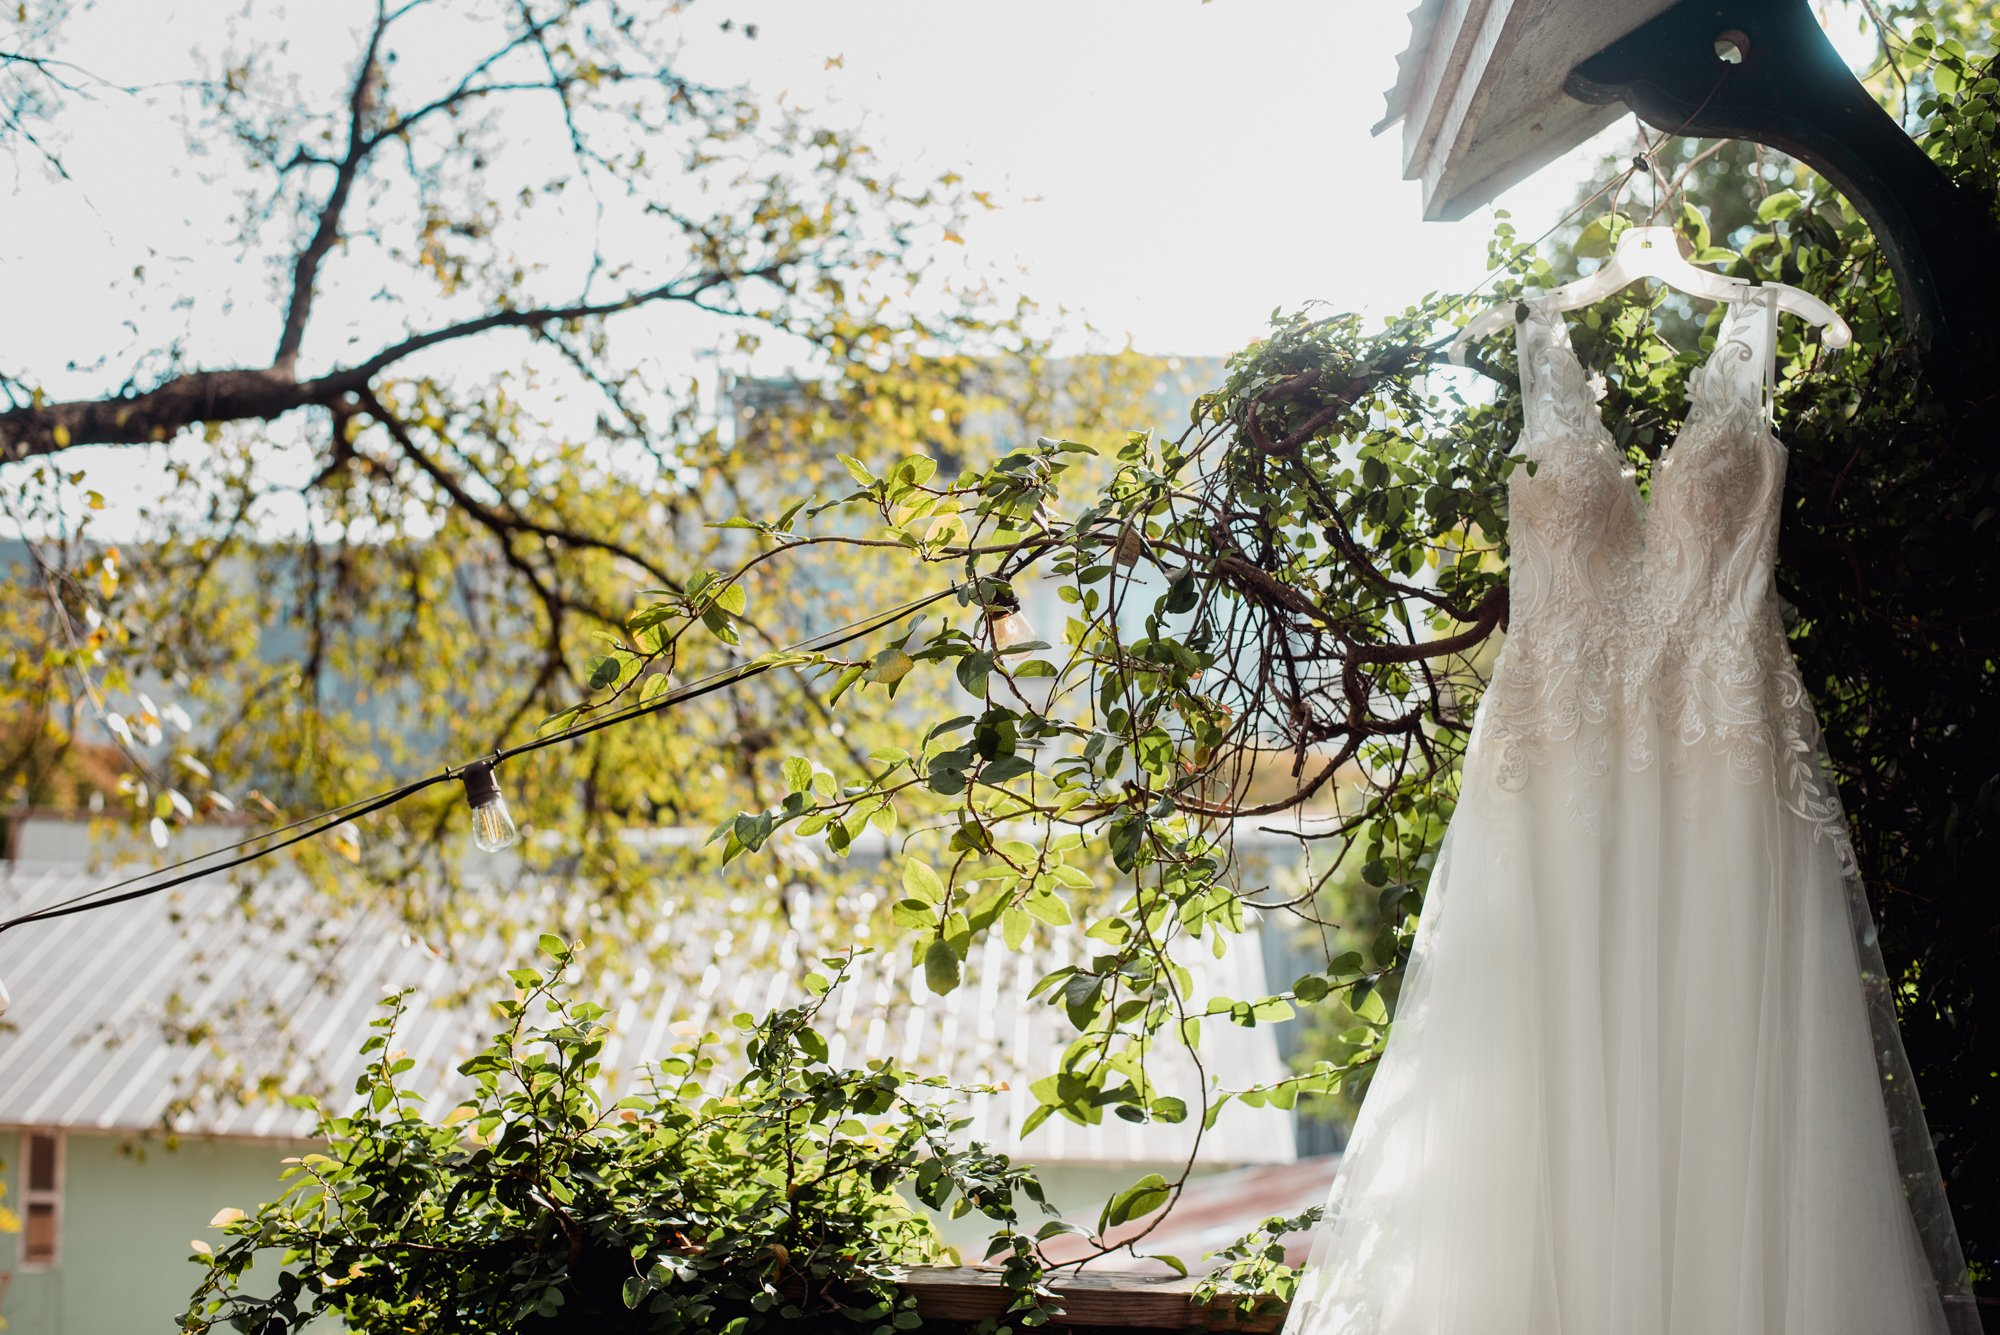 bhldn lace wedding dress hangs outside a house on a wire